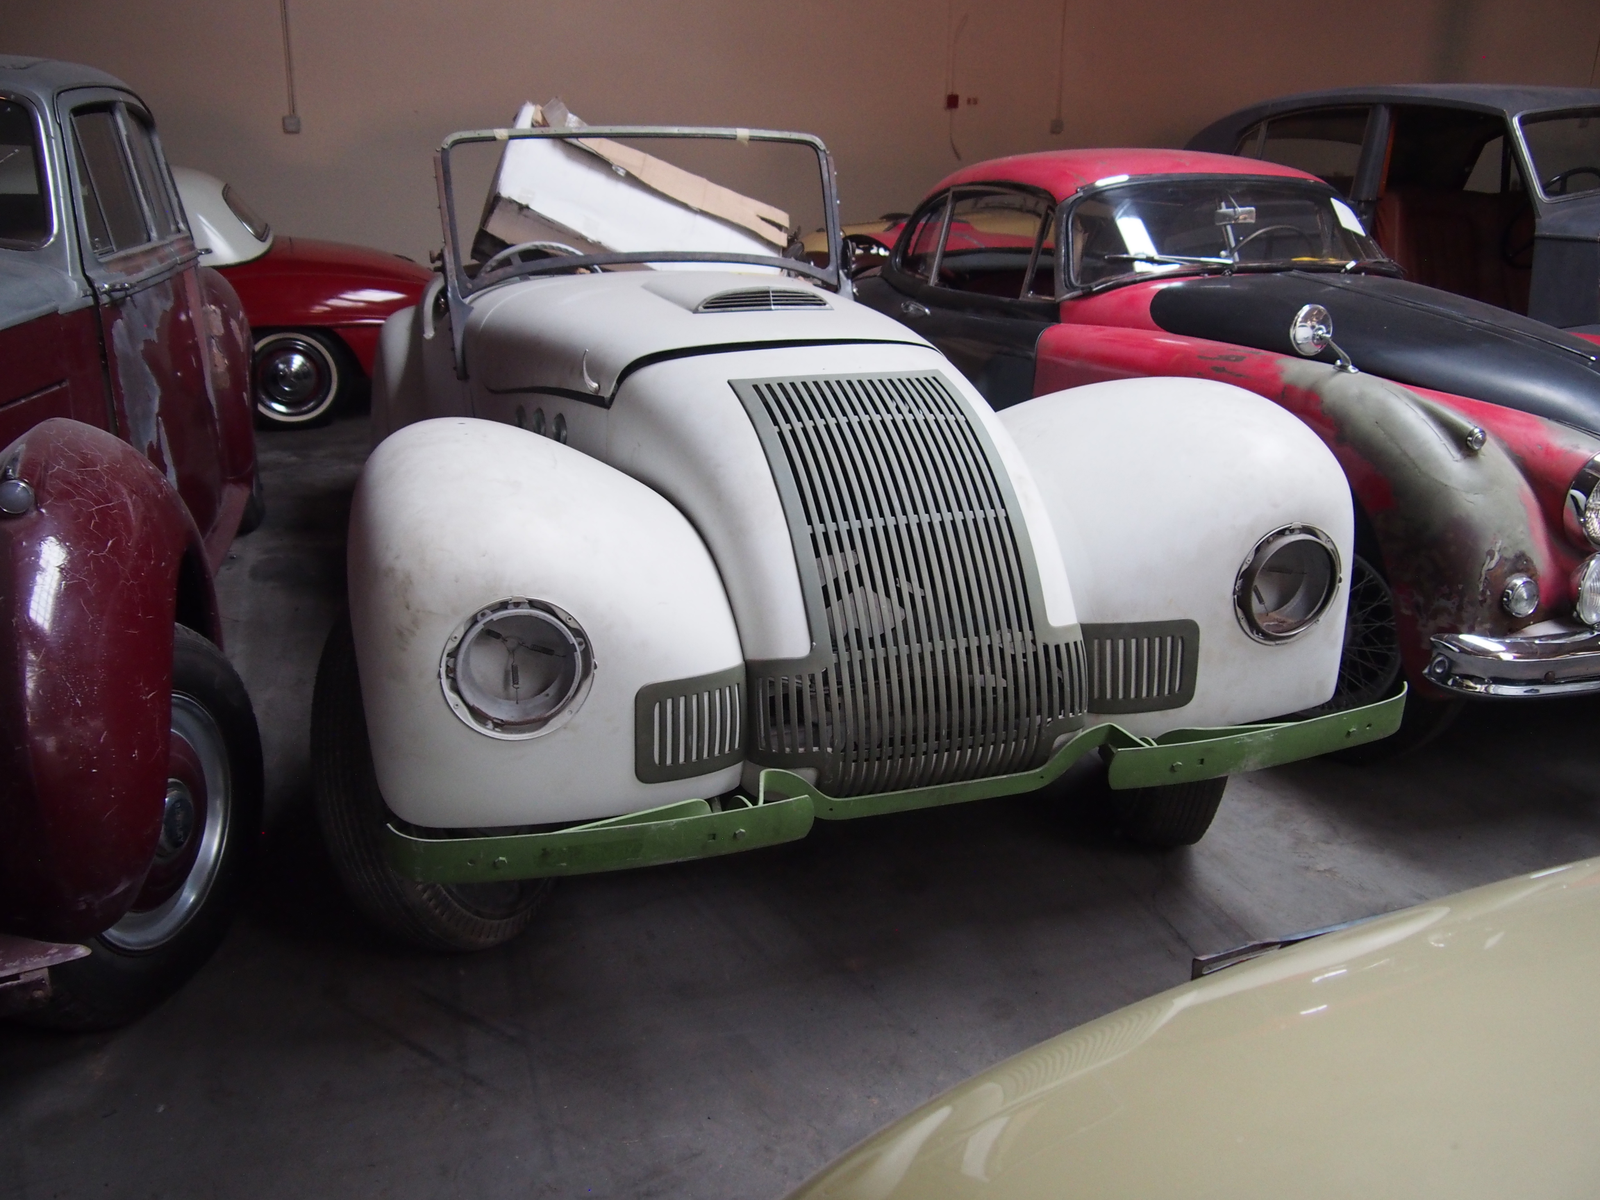 This isn't on their website, but I believe it's an Allard J1 which would make it an extremely rare car as Allard only built 12.  These could be had with a 3.6 or 3.9 liter Ford V8, so maybe the hood scoop means this has the bigger engine? Anyway, amazing car. I wonder where they found it.